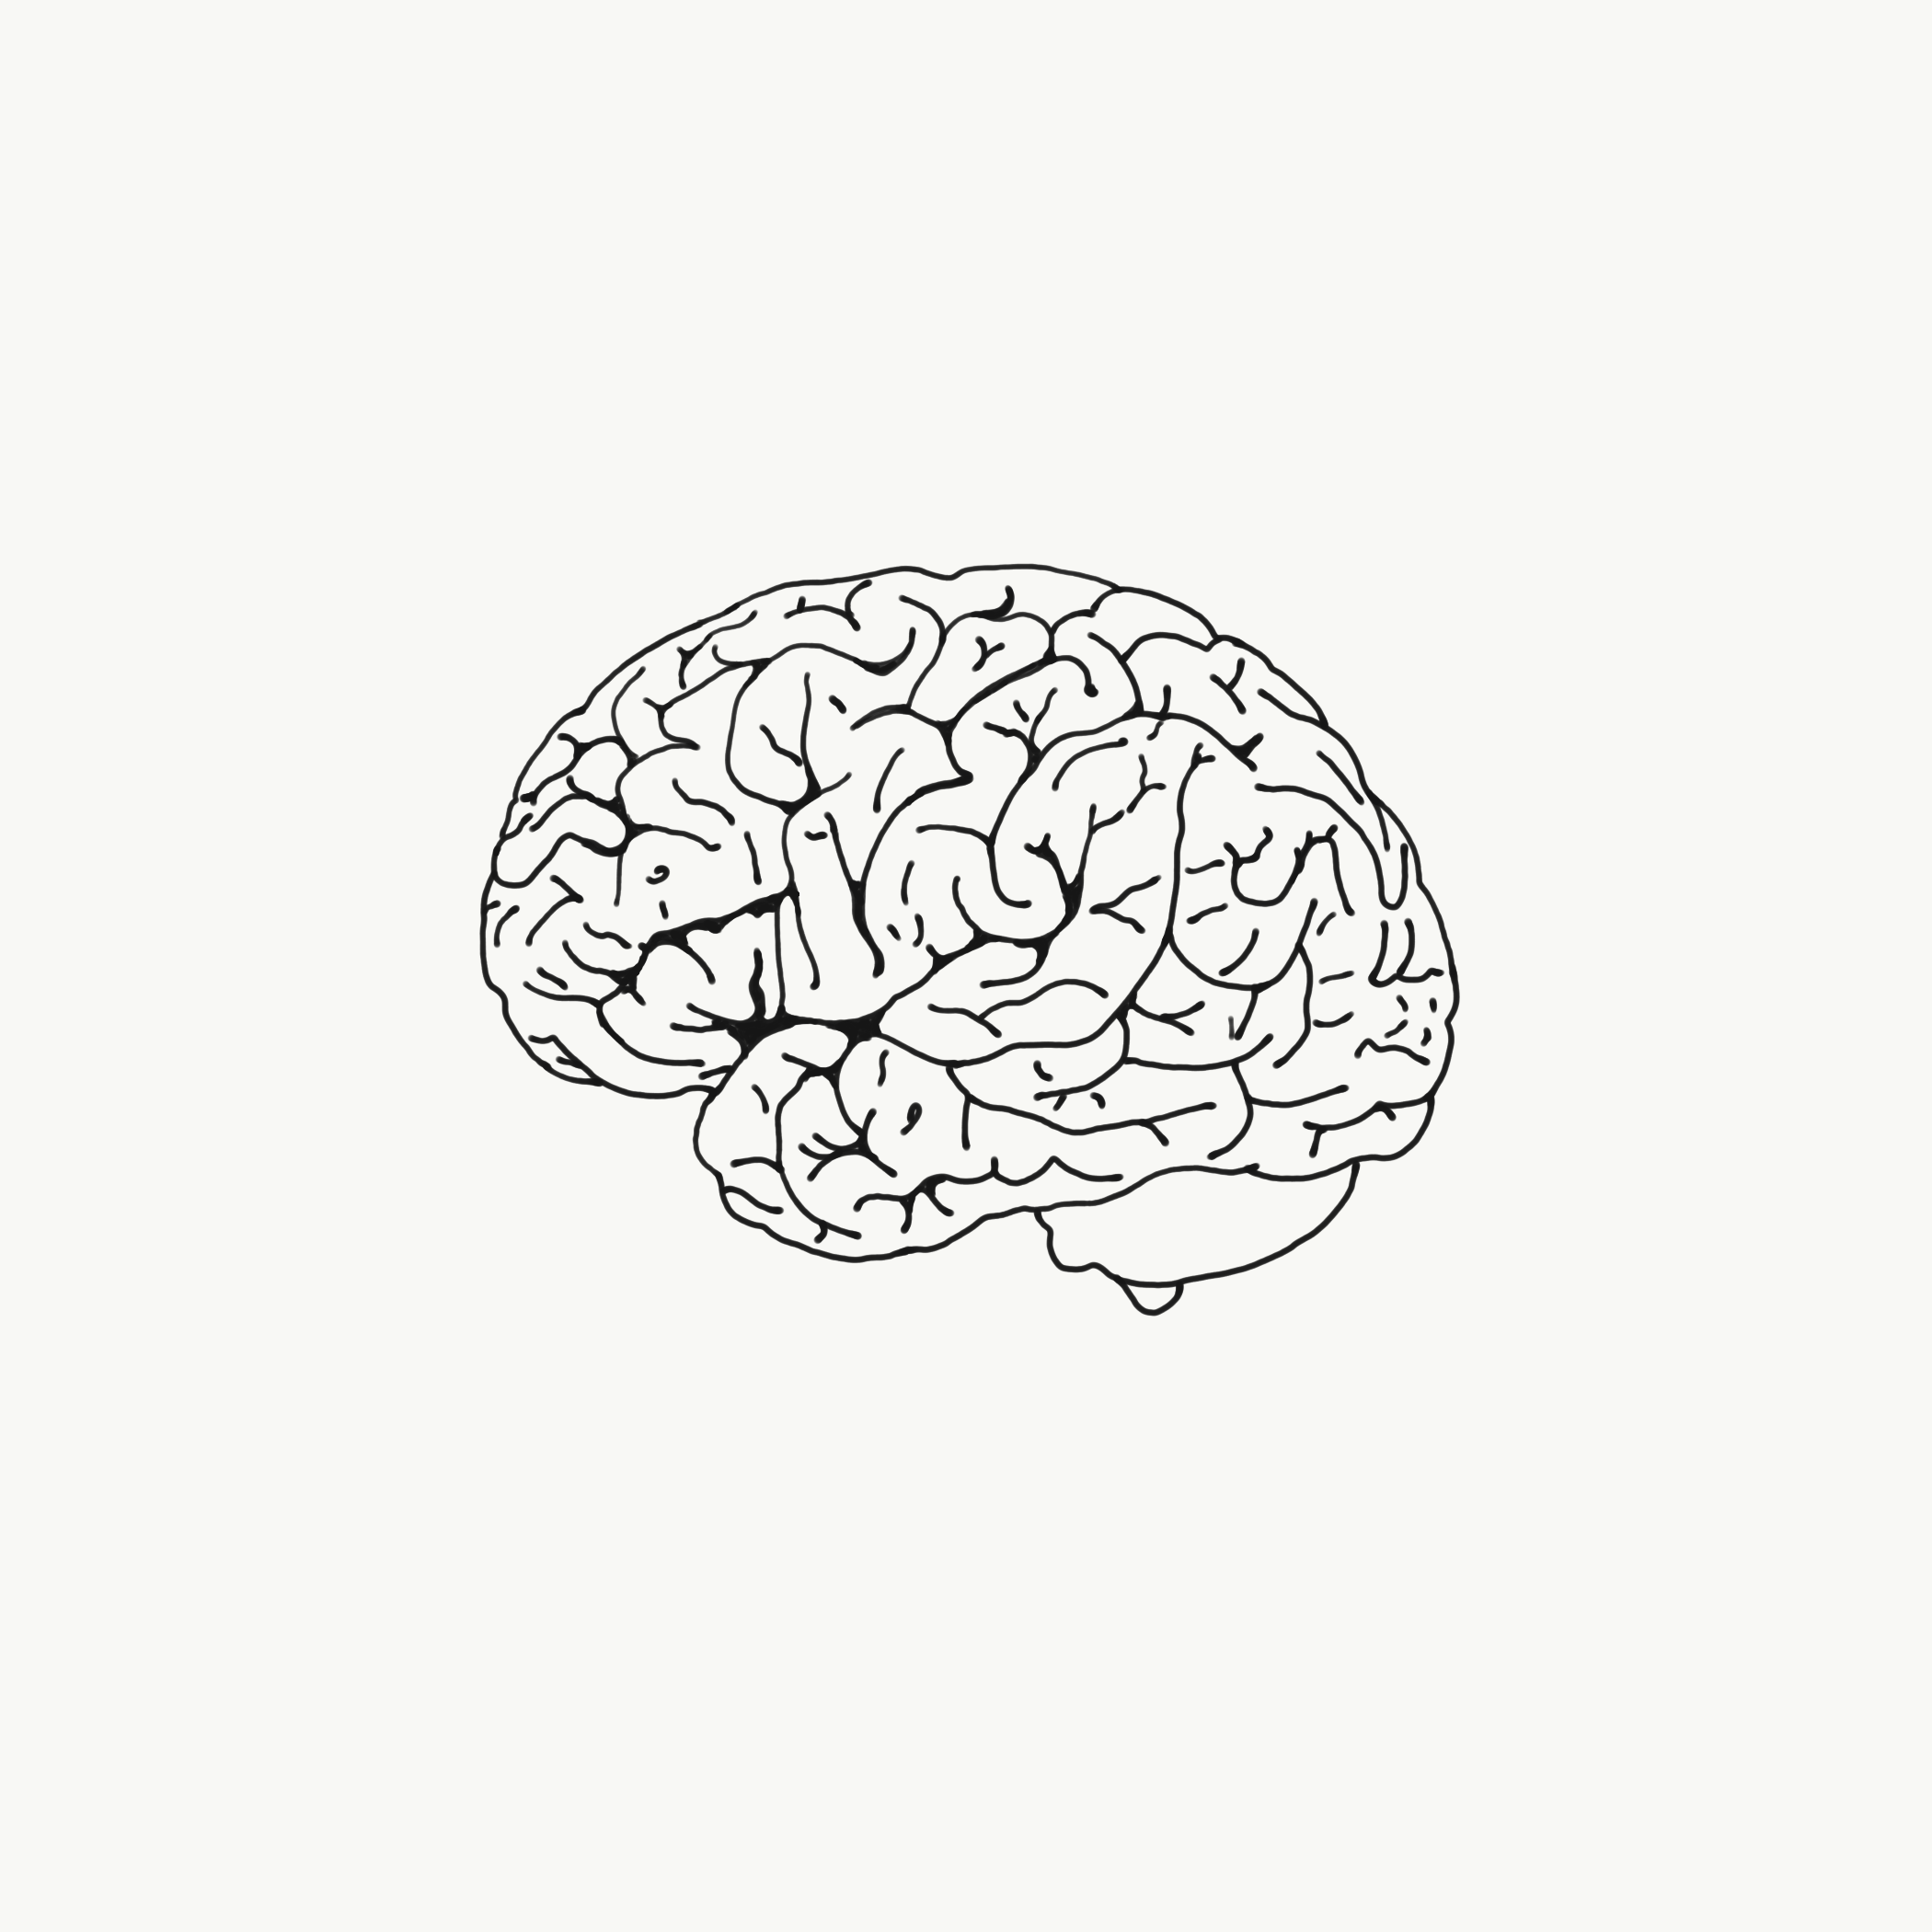 2100x2100 Ipad Pro Adobe Sketch Pen Drawing Of A Brain Brain